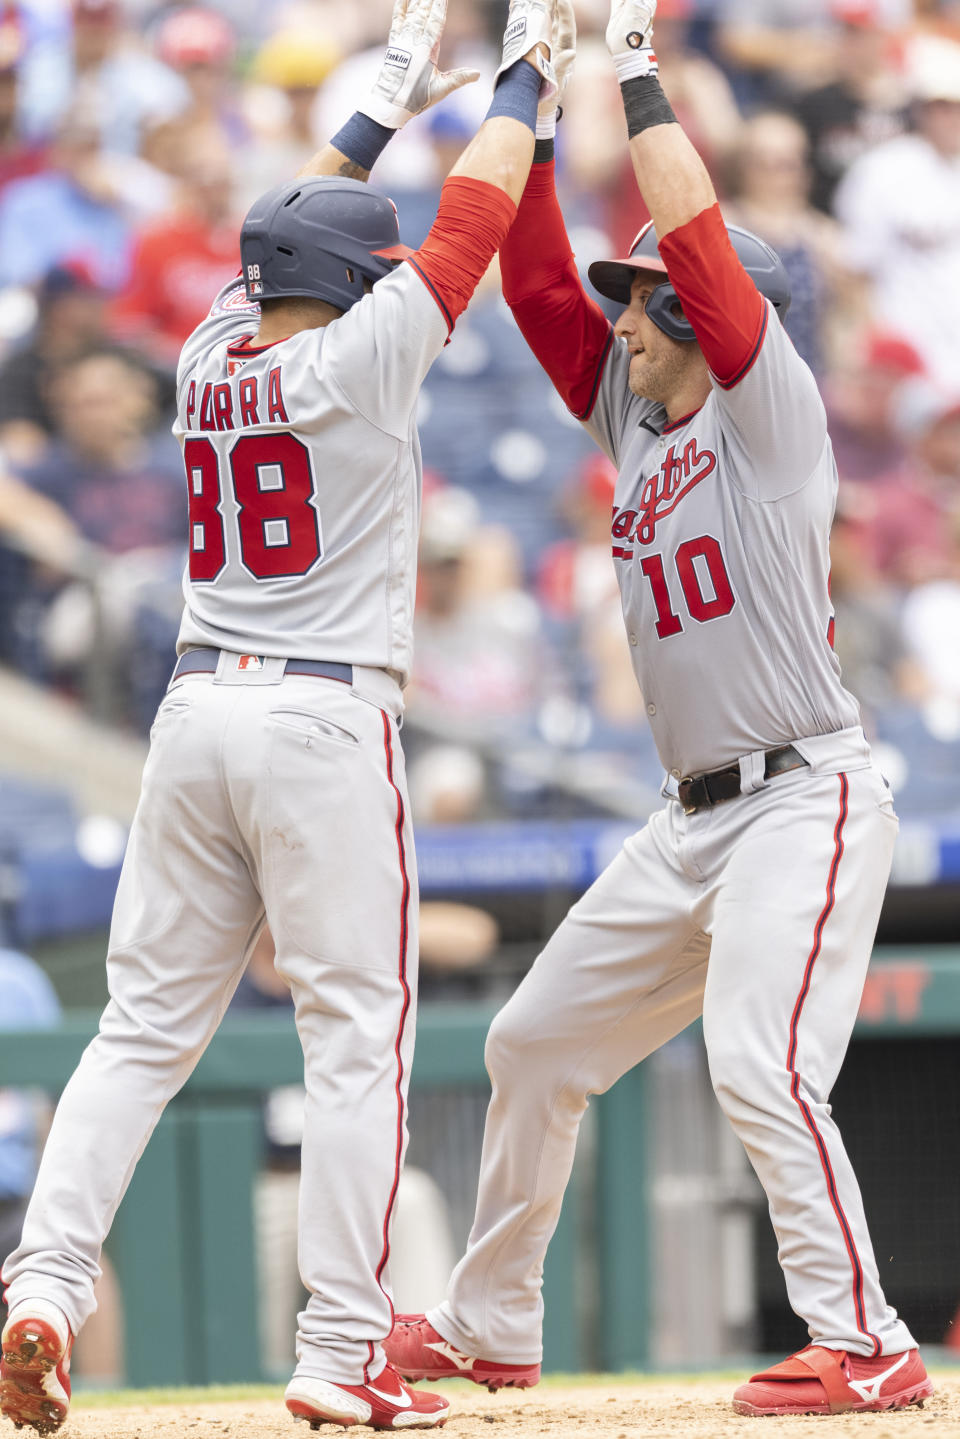 Washington Nationals' Yan Gomes (10) celebrates with Gerardo Parra (88) after hitting a two-run home run during the seventh inning of a baseball game against the Philadelphia Phillies, Thursday, July 29, 2021, in Philadelphia in the first game of a double header. (AP Photo/Laurence Kesterson)